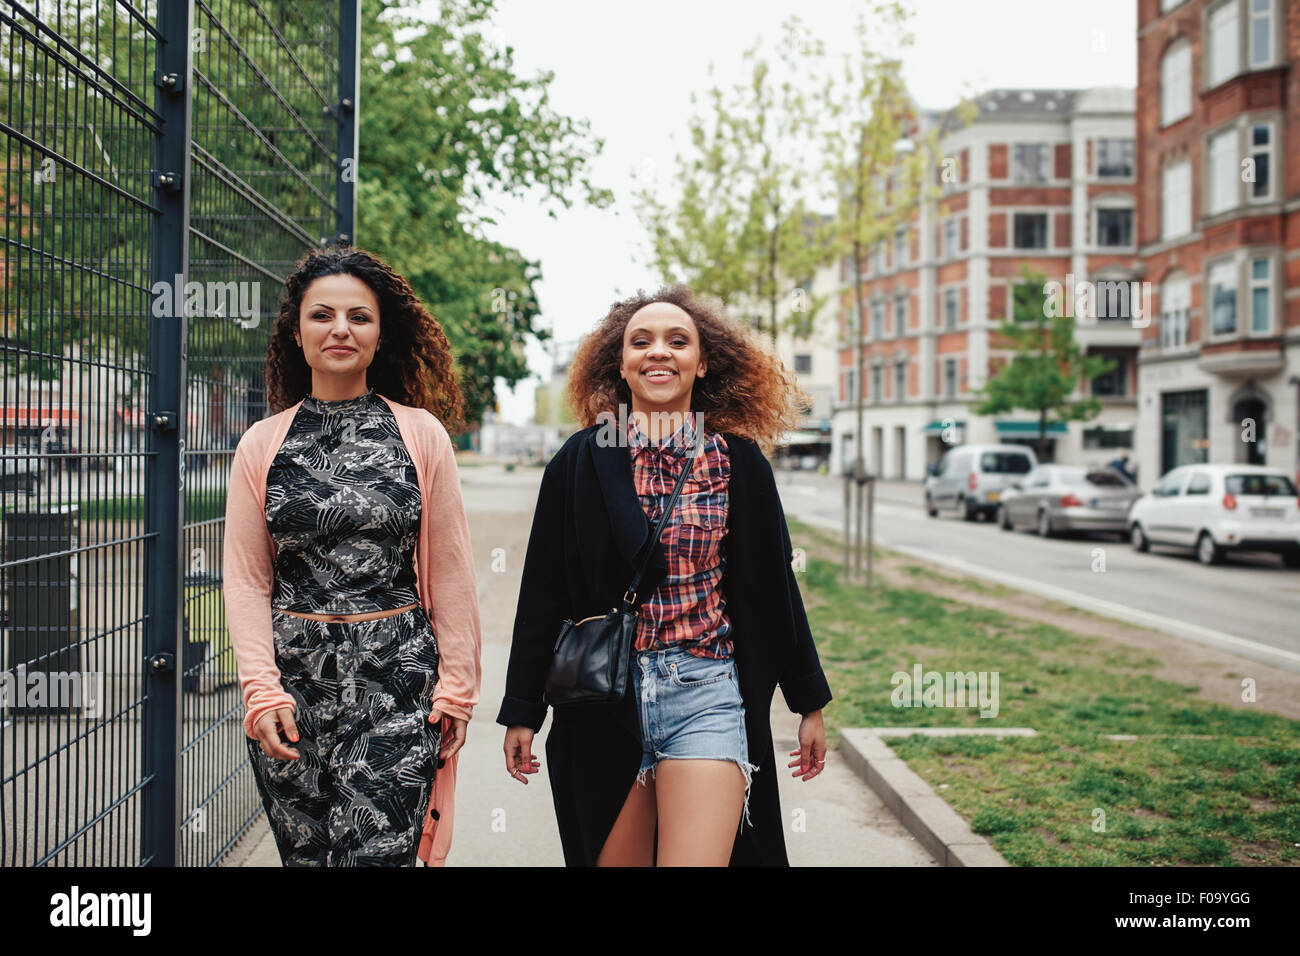 Outdoor shot of two girlfriends walking through town. Happy young women walking together along a city street. Stock Photo